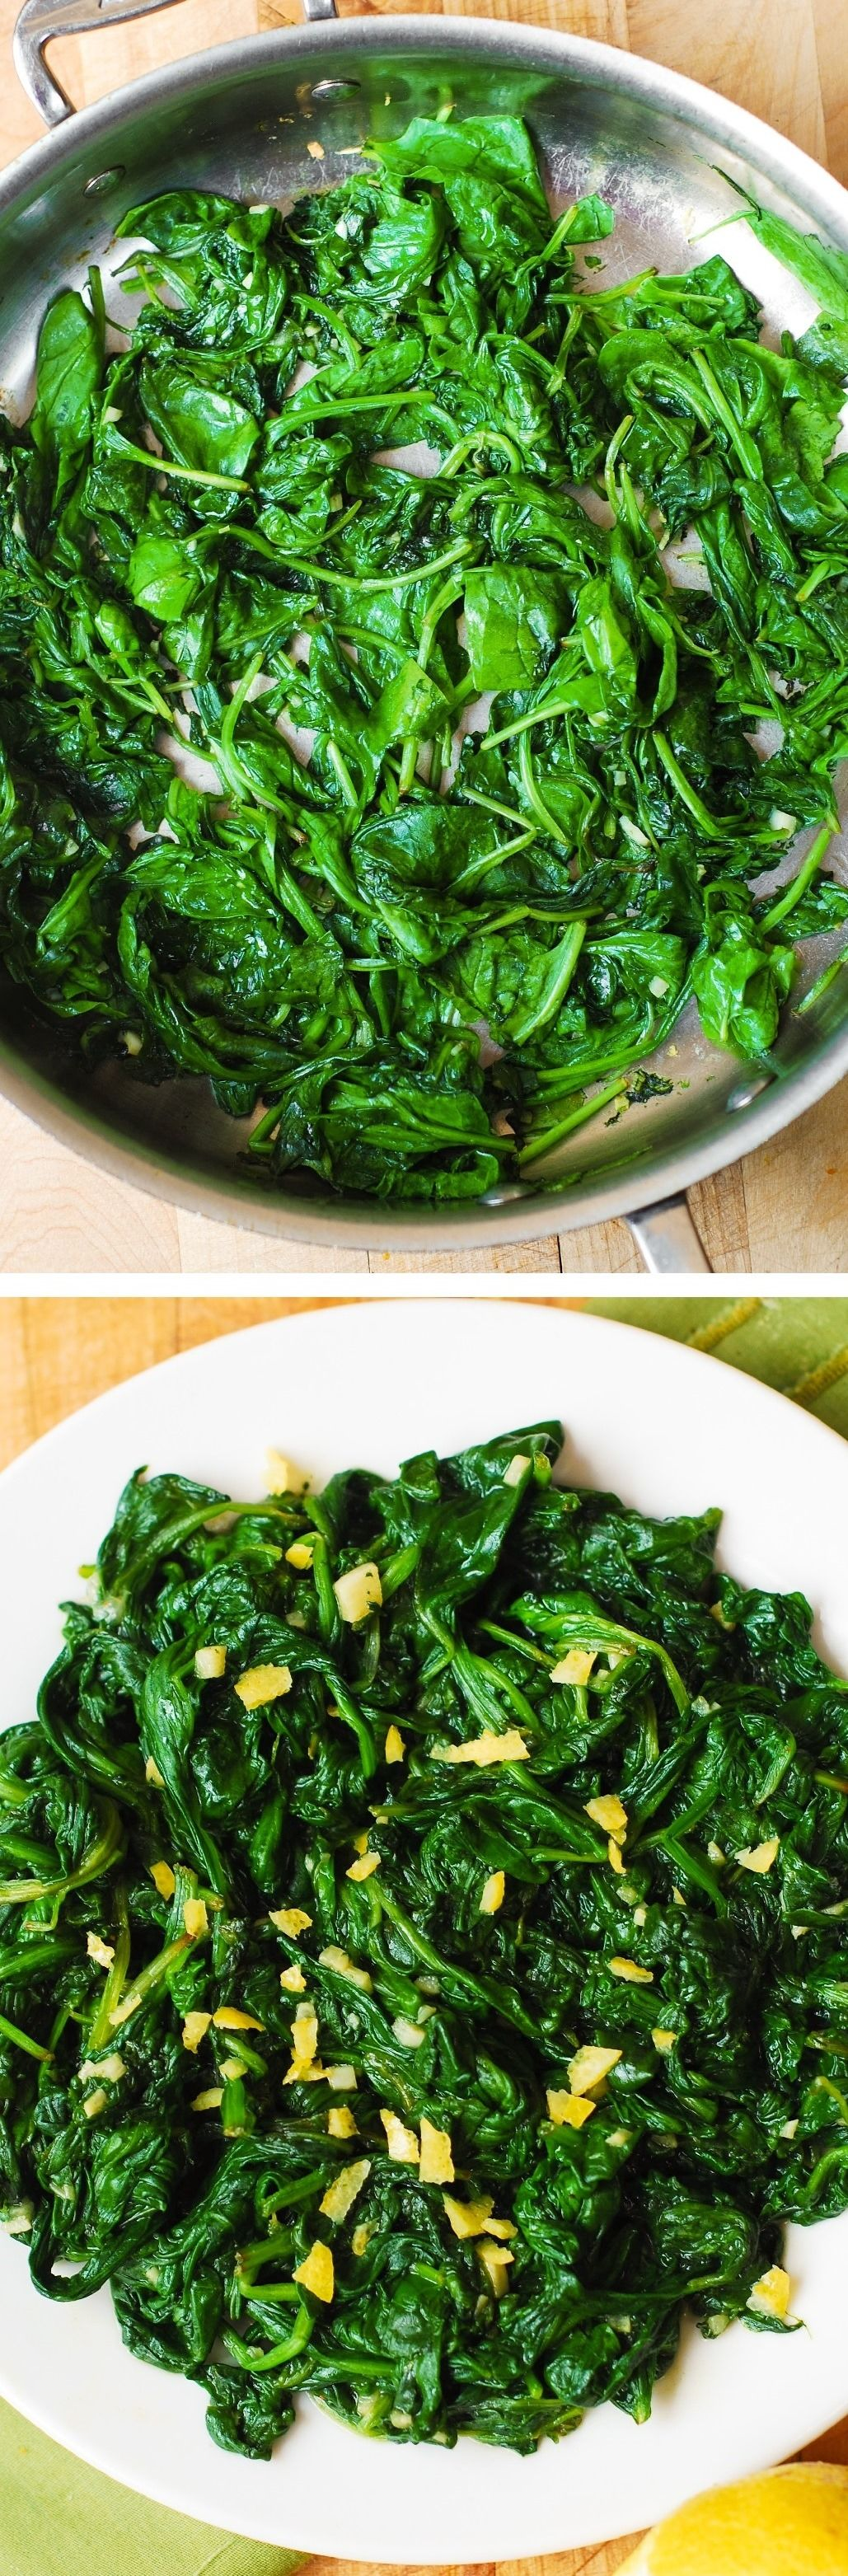 Best cooked spinach, with garlic, freshly squeezed lemon juice, and topped with lemon zest (peel)! Tasty, quick, healthy, and beautiful side dish! Goes great with pasta, grilled meats, steak, and chicken. It's very easy to make, inexpensive, paleo, vegetarian, vegan, and gluten free!